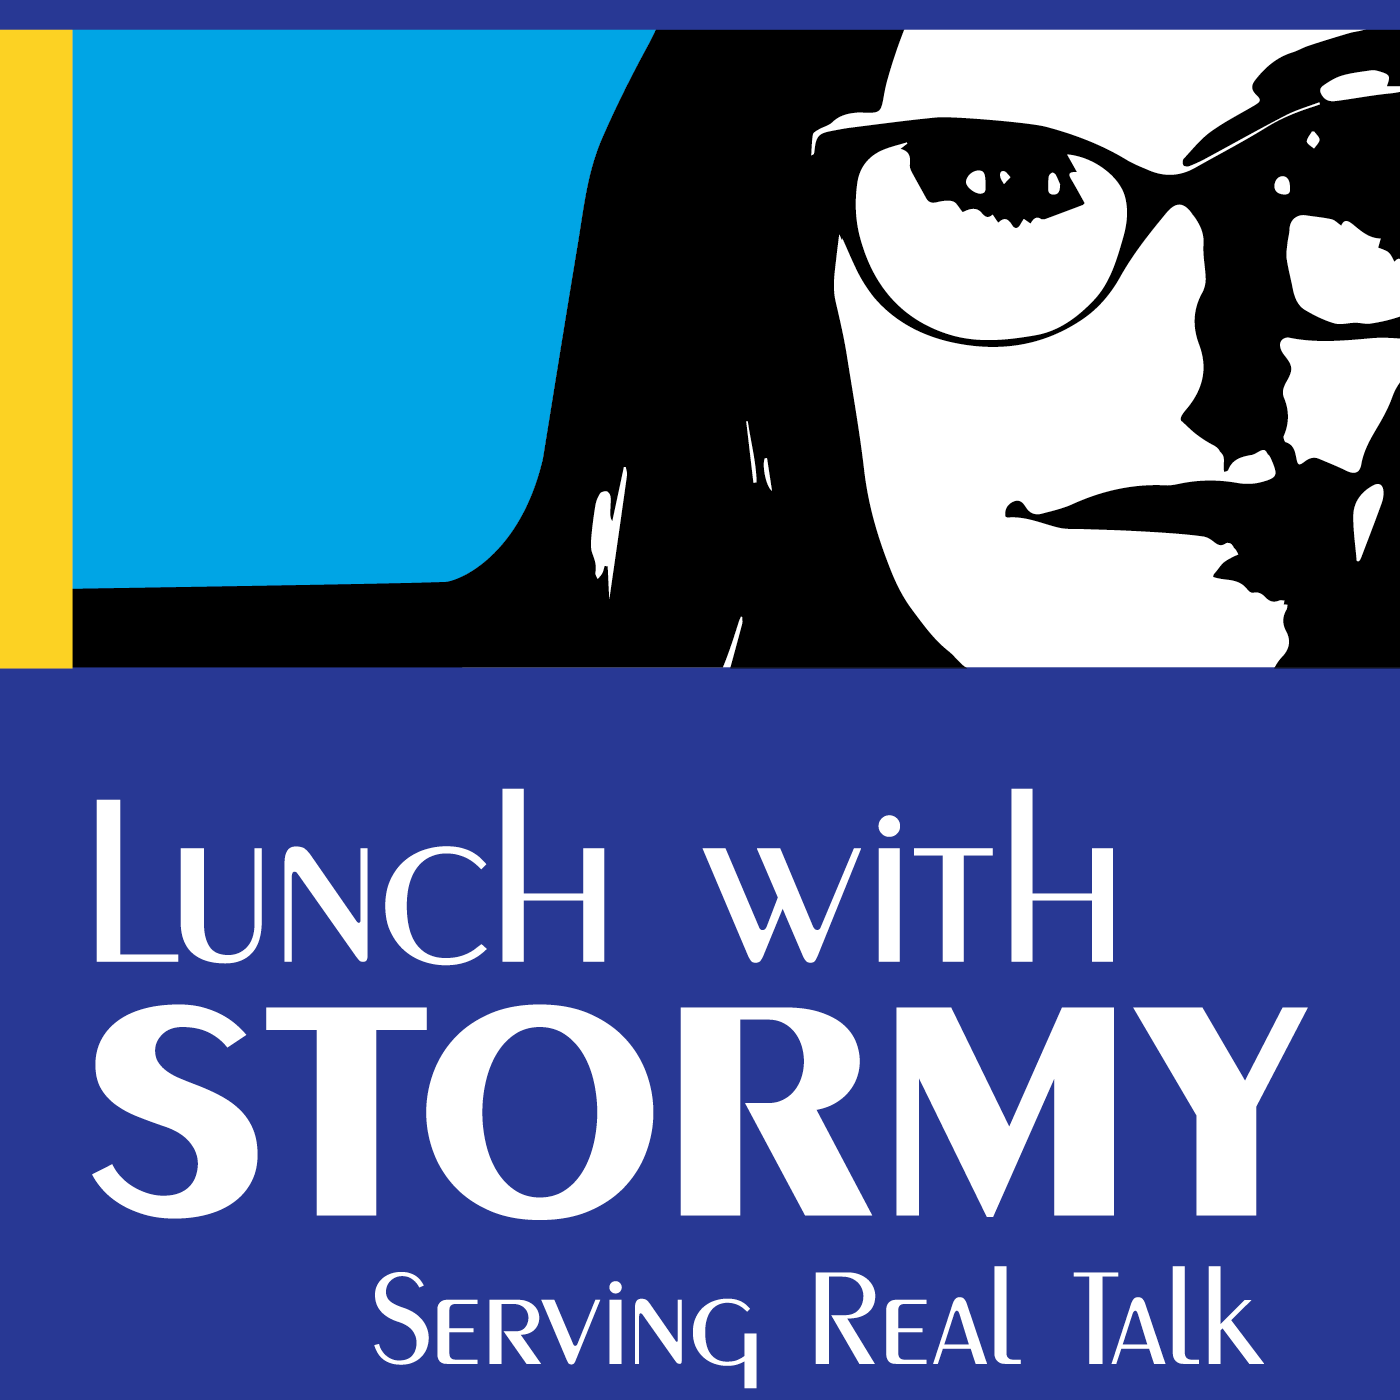 Lunch-with-stormy